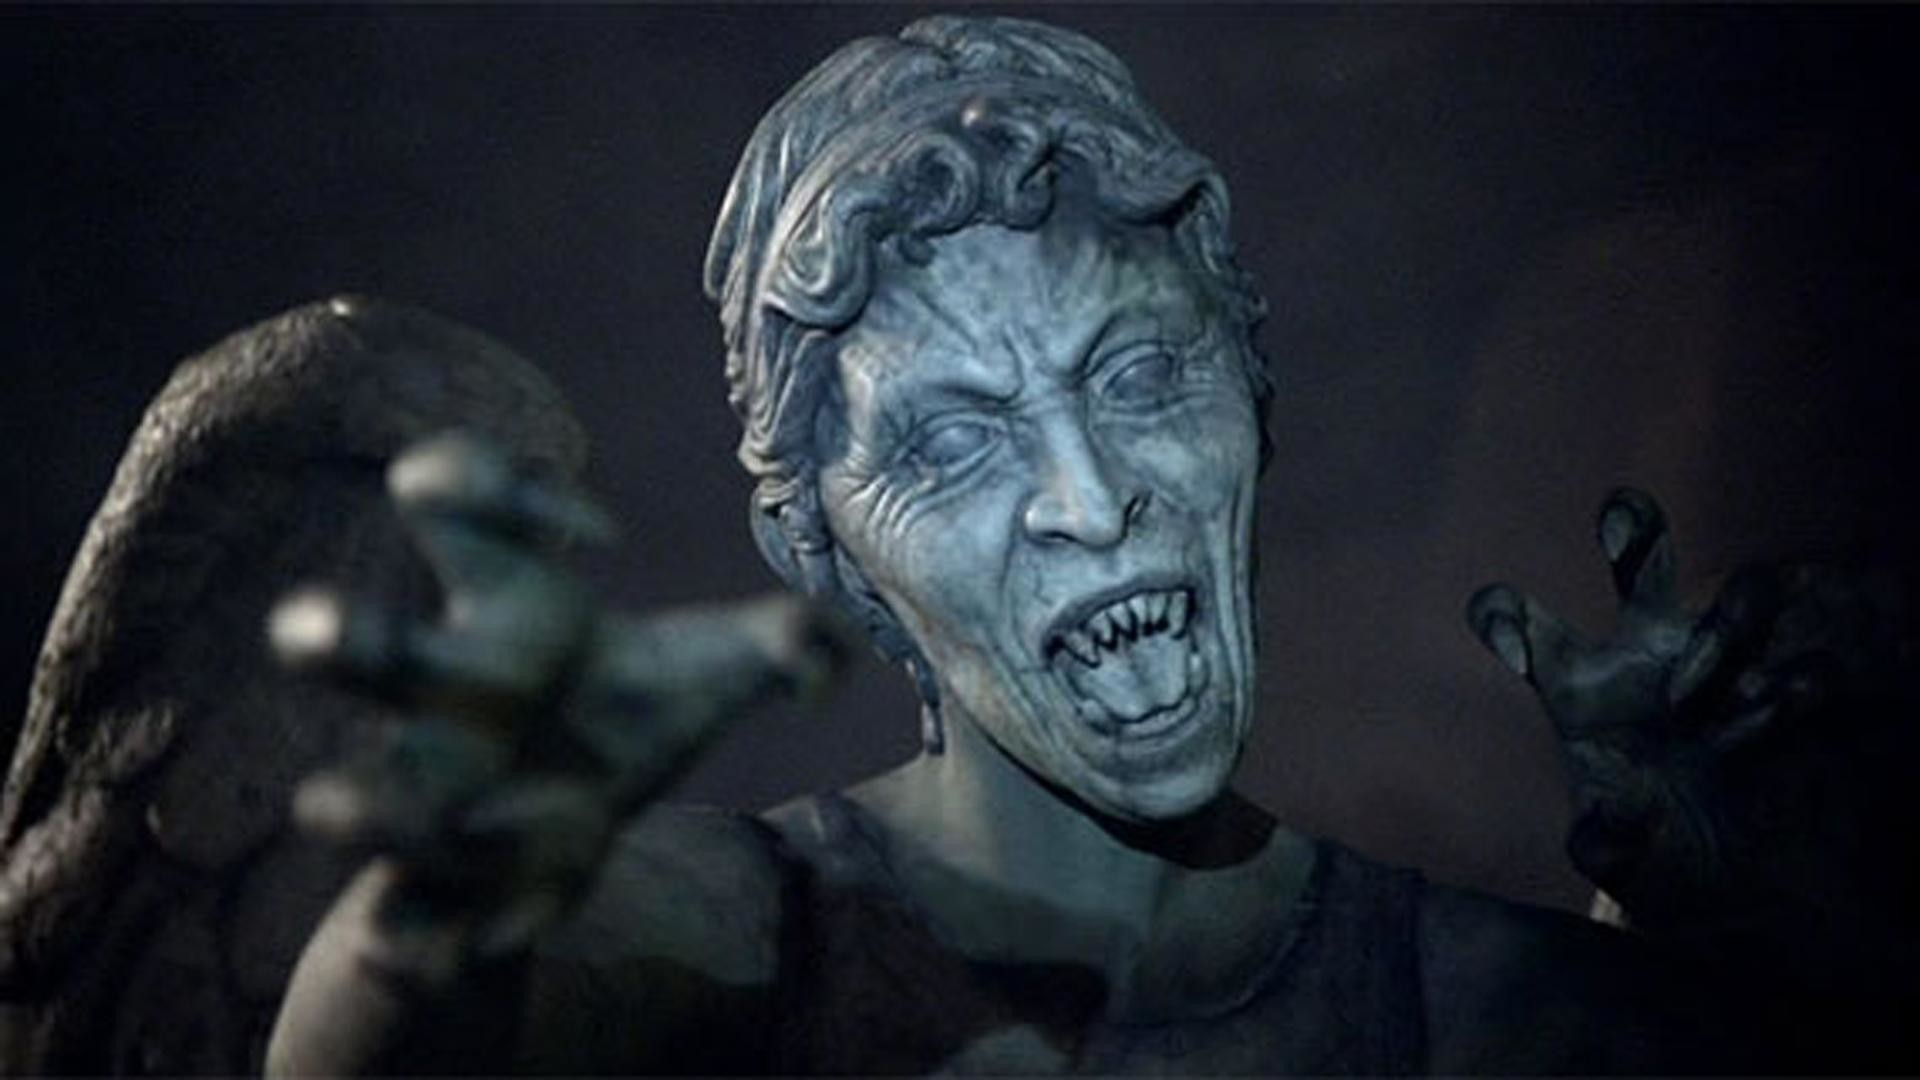 1920x1080 Weeping Angels Computer Wallpapers Desktop Backgrounds